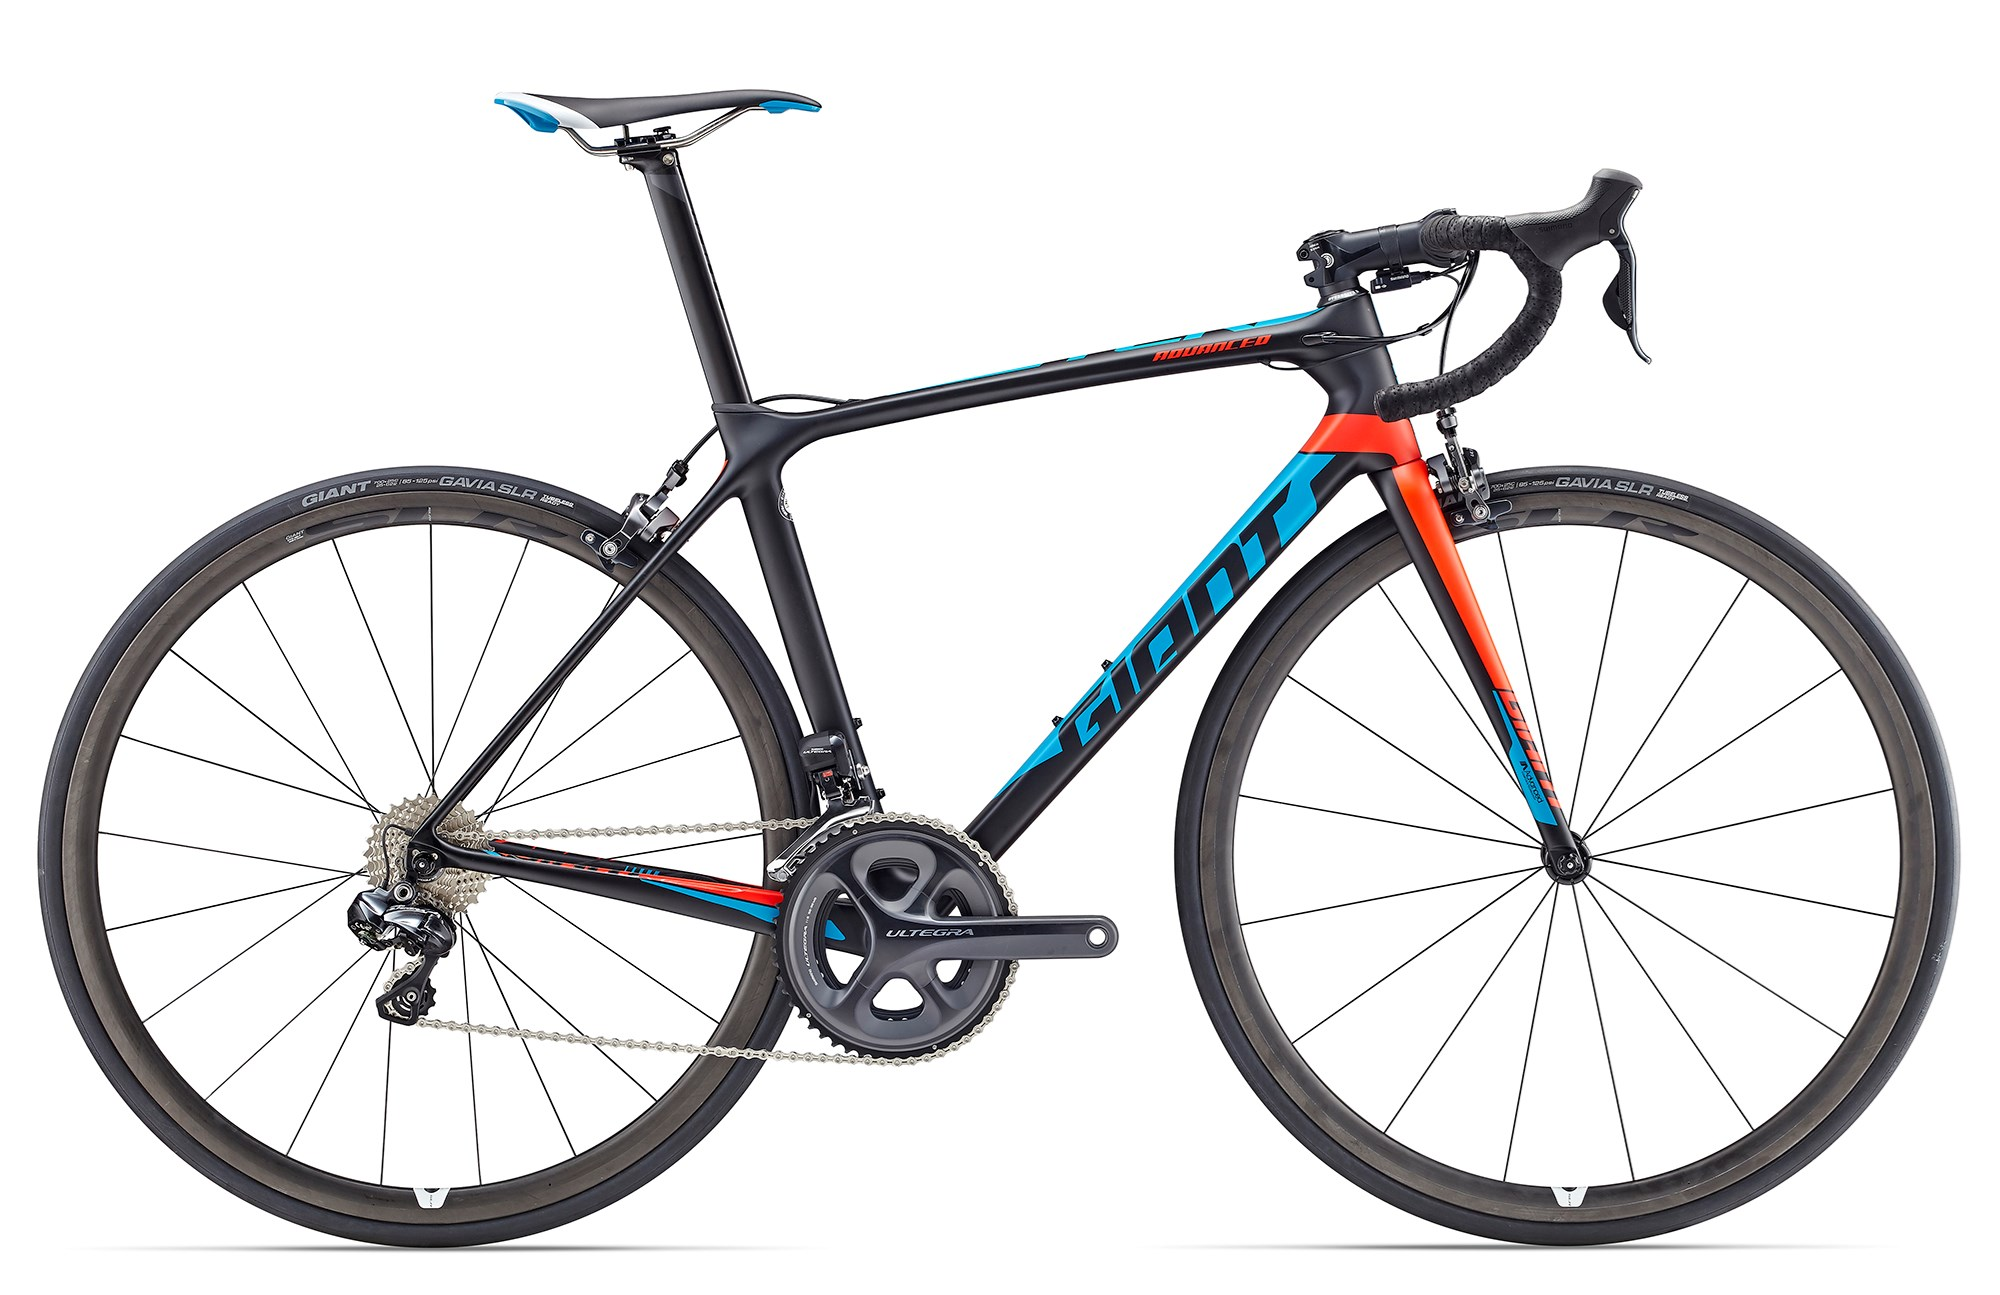 2017 GIANT TCR ADVANCED PRO 0